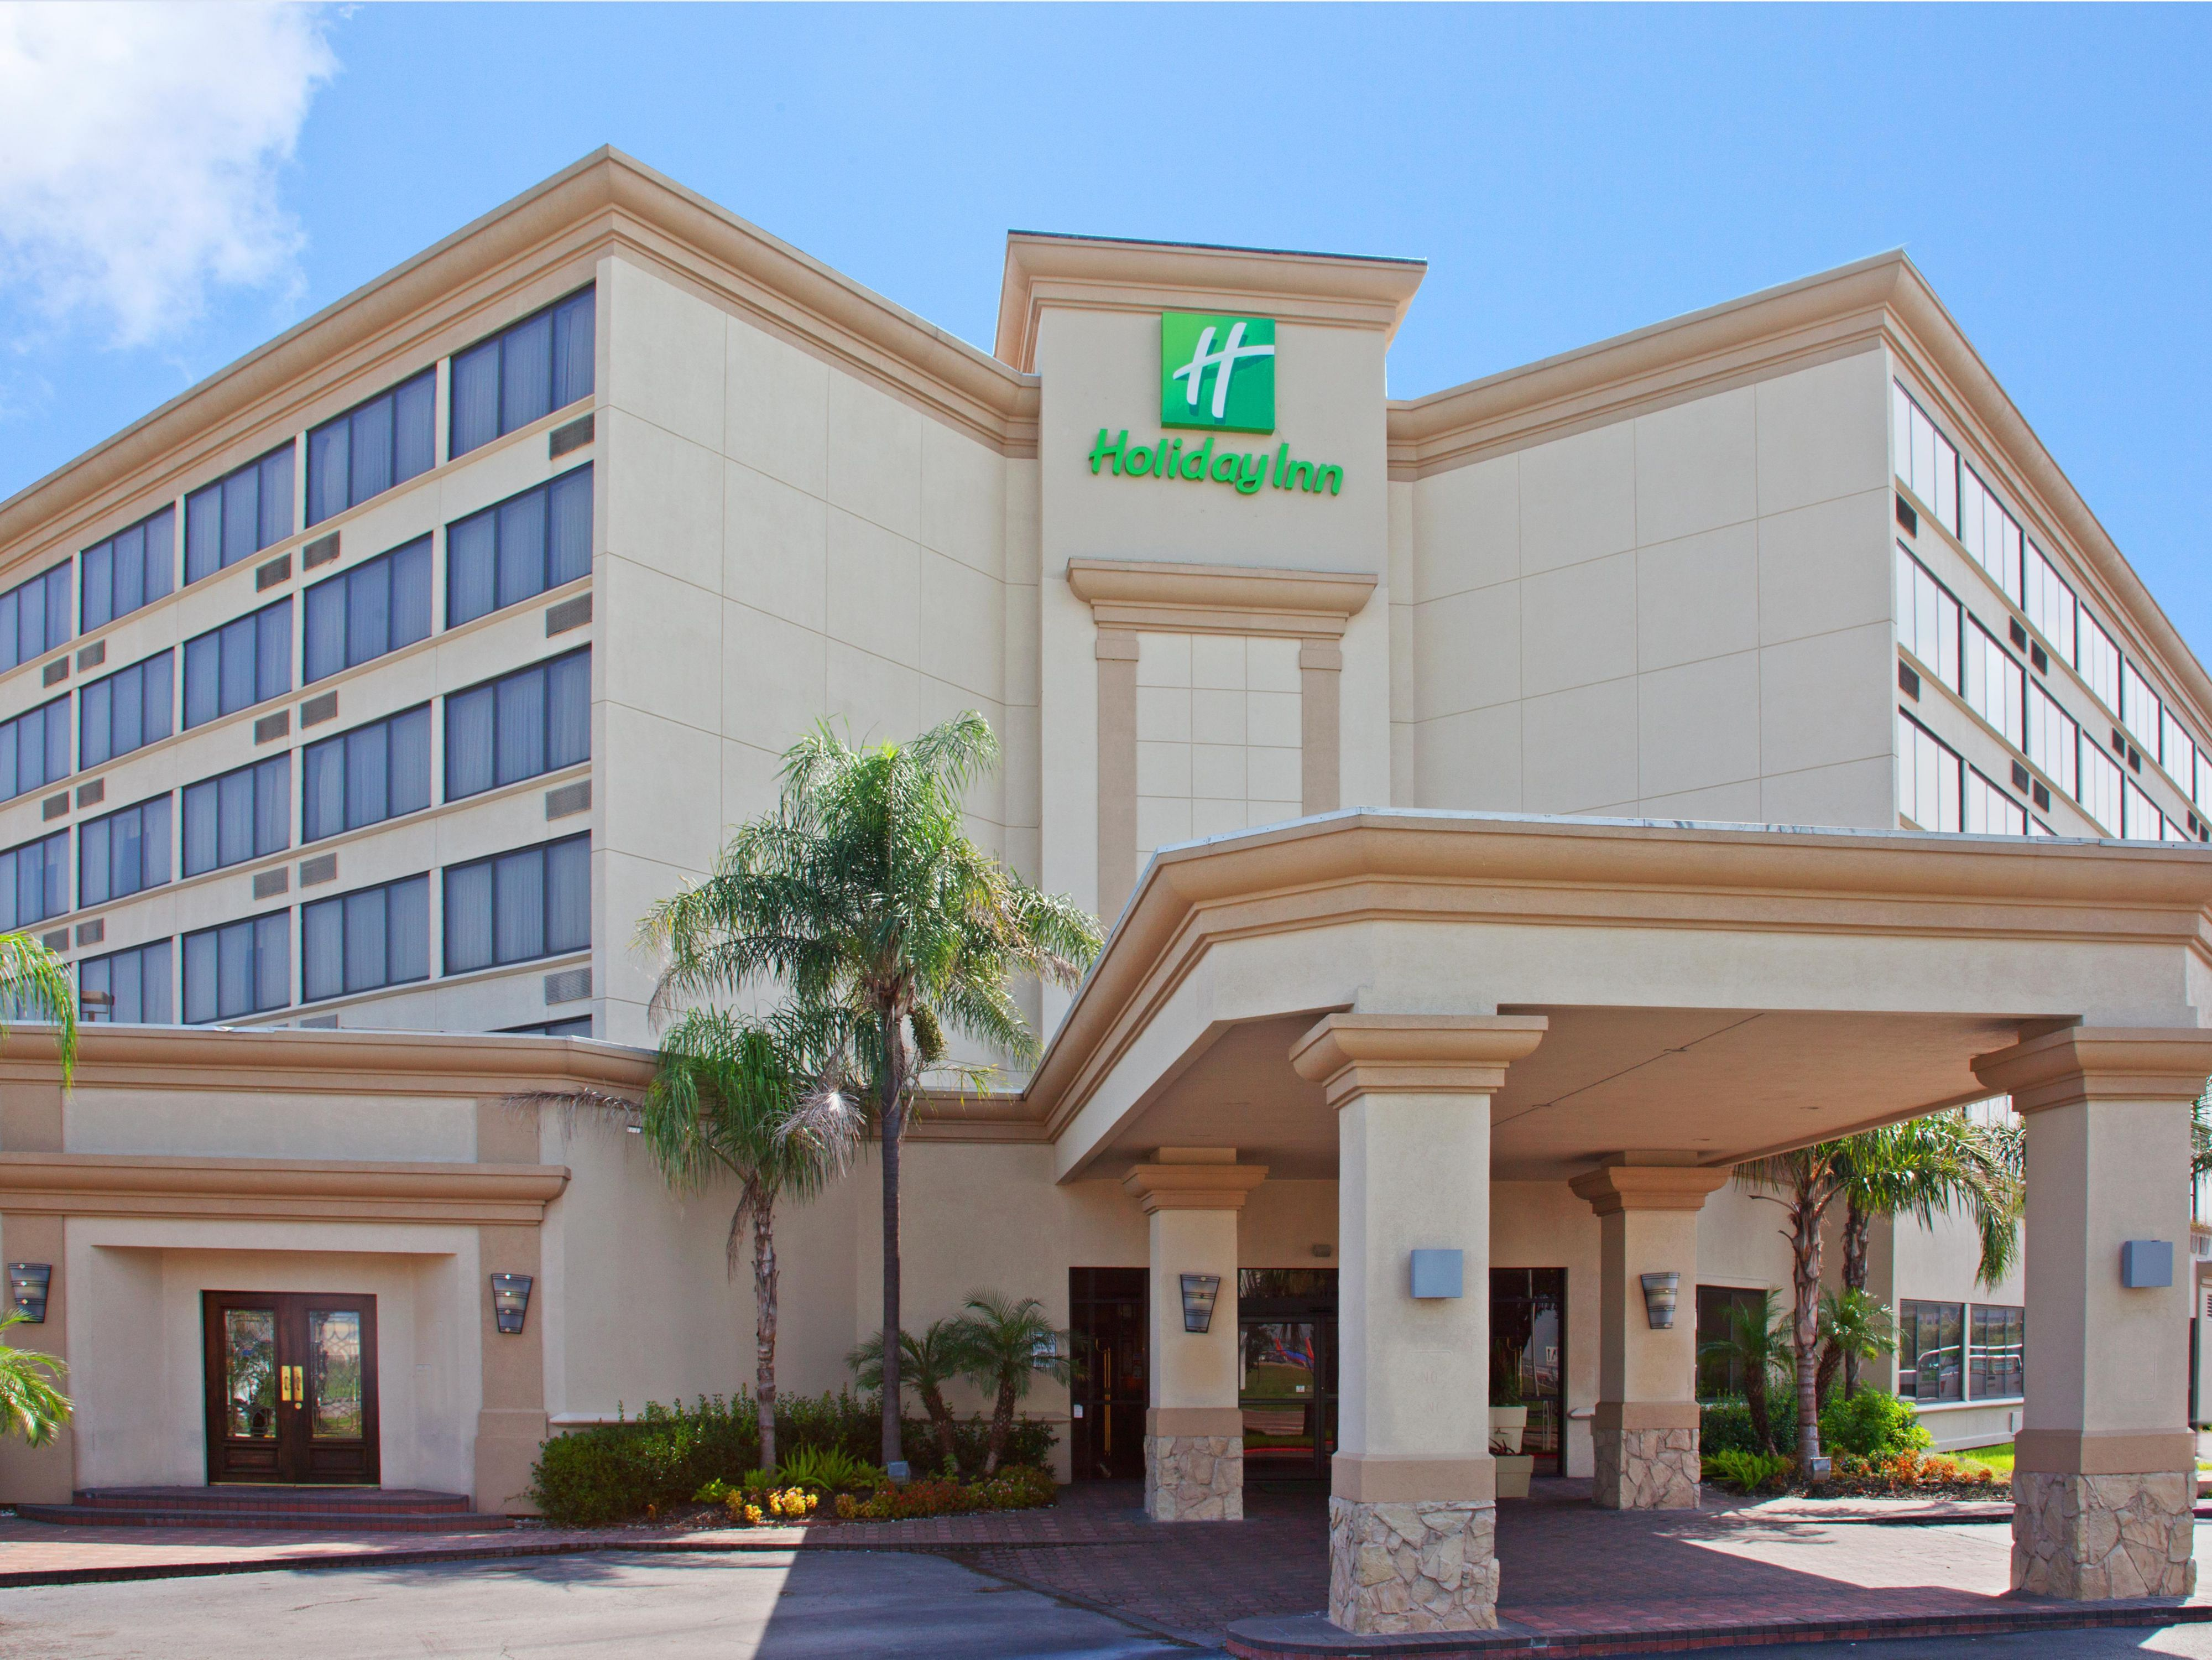 Holiday Inn Houston Hobby Airport Hotel By Ihg